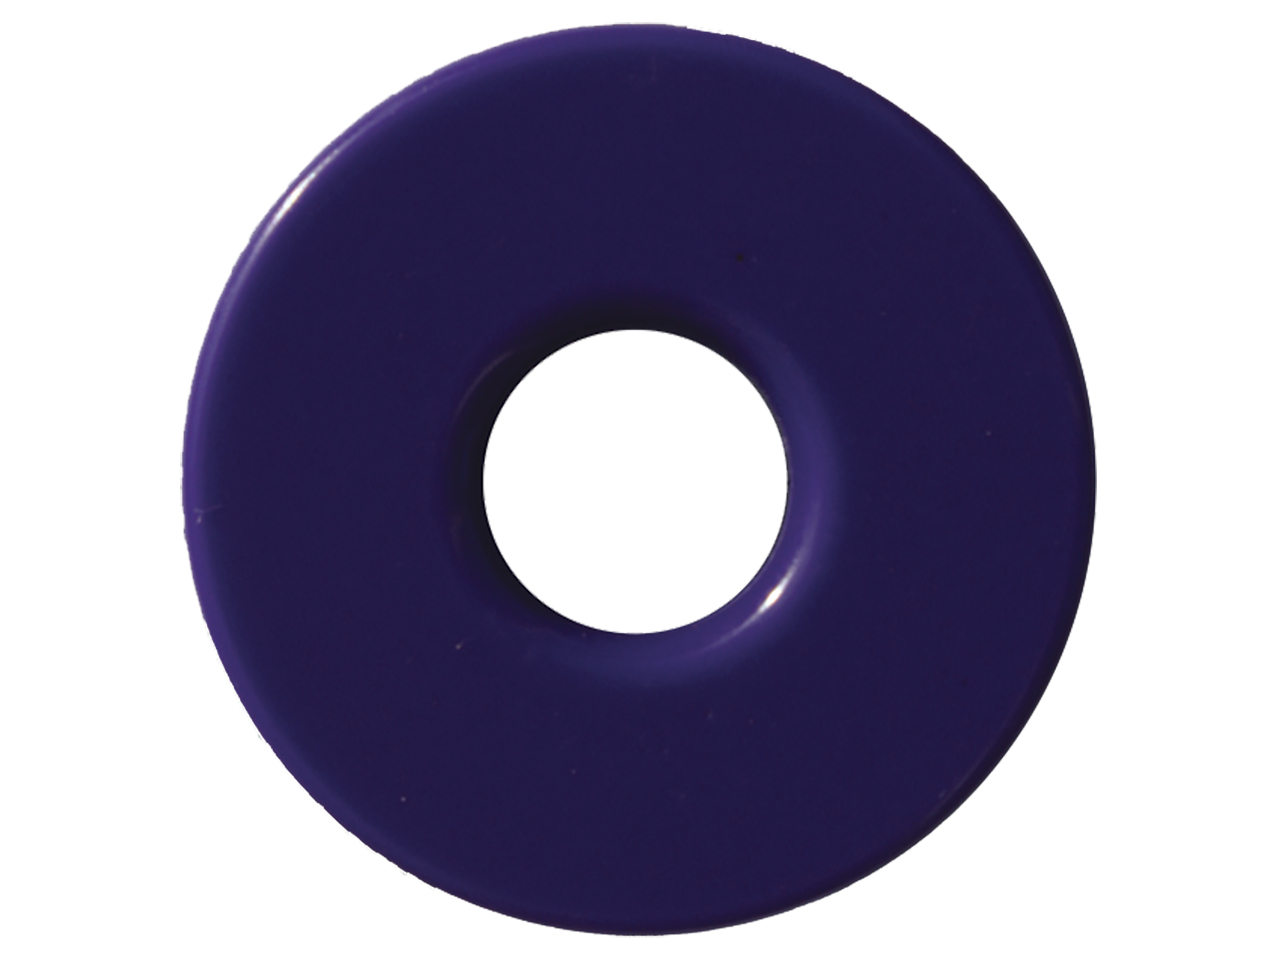 Picture of Wehrs Sleeve Style Pull Bar Puck - (Purple - 80 Durometer)